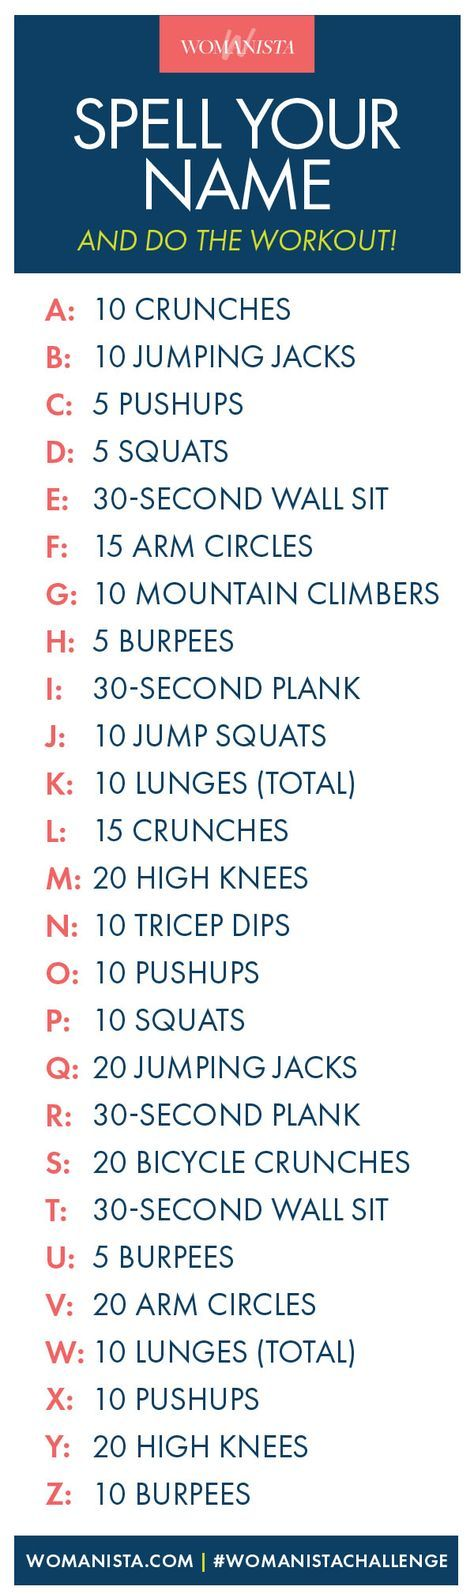 Want to work out but sick of your usual routine? Have a little fun when you use our name chart! Perform each exercise associated with each letter in your first, middle and last name. We promise you'll be sweating! Womanista.com